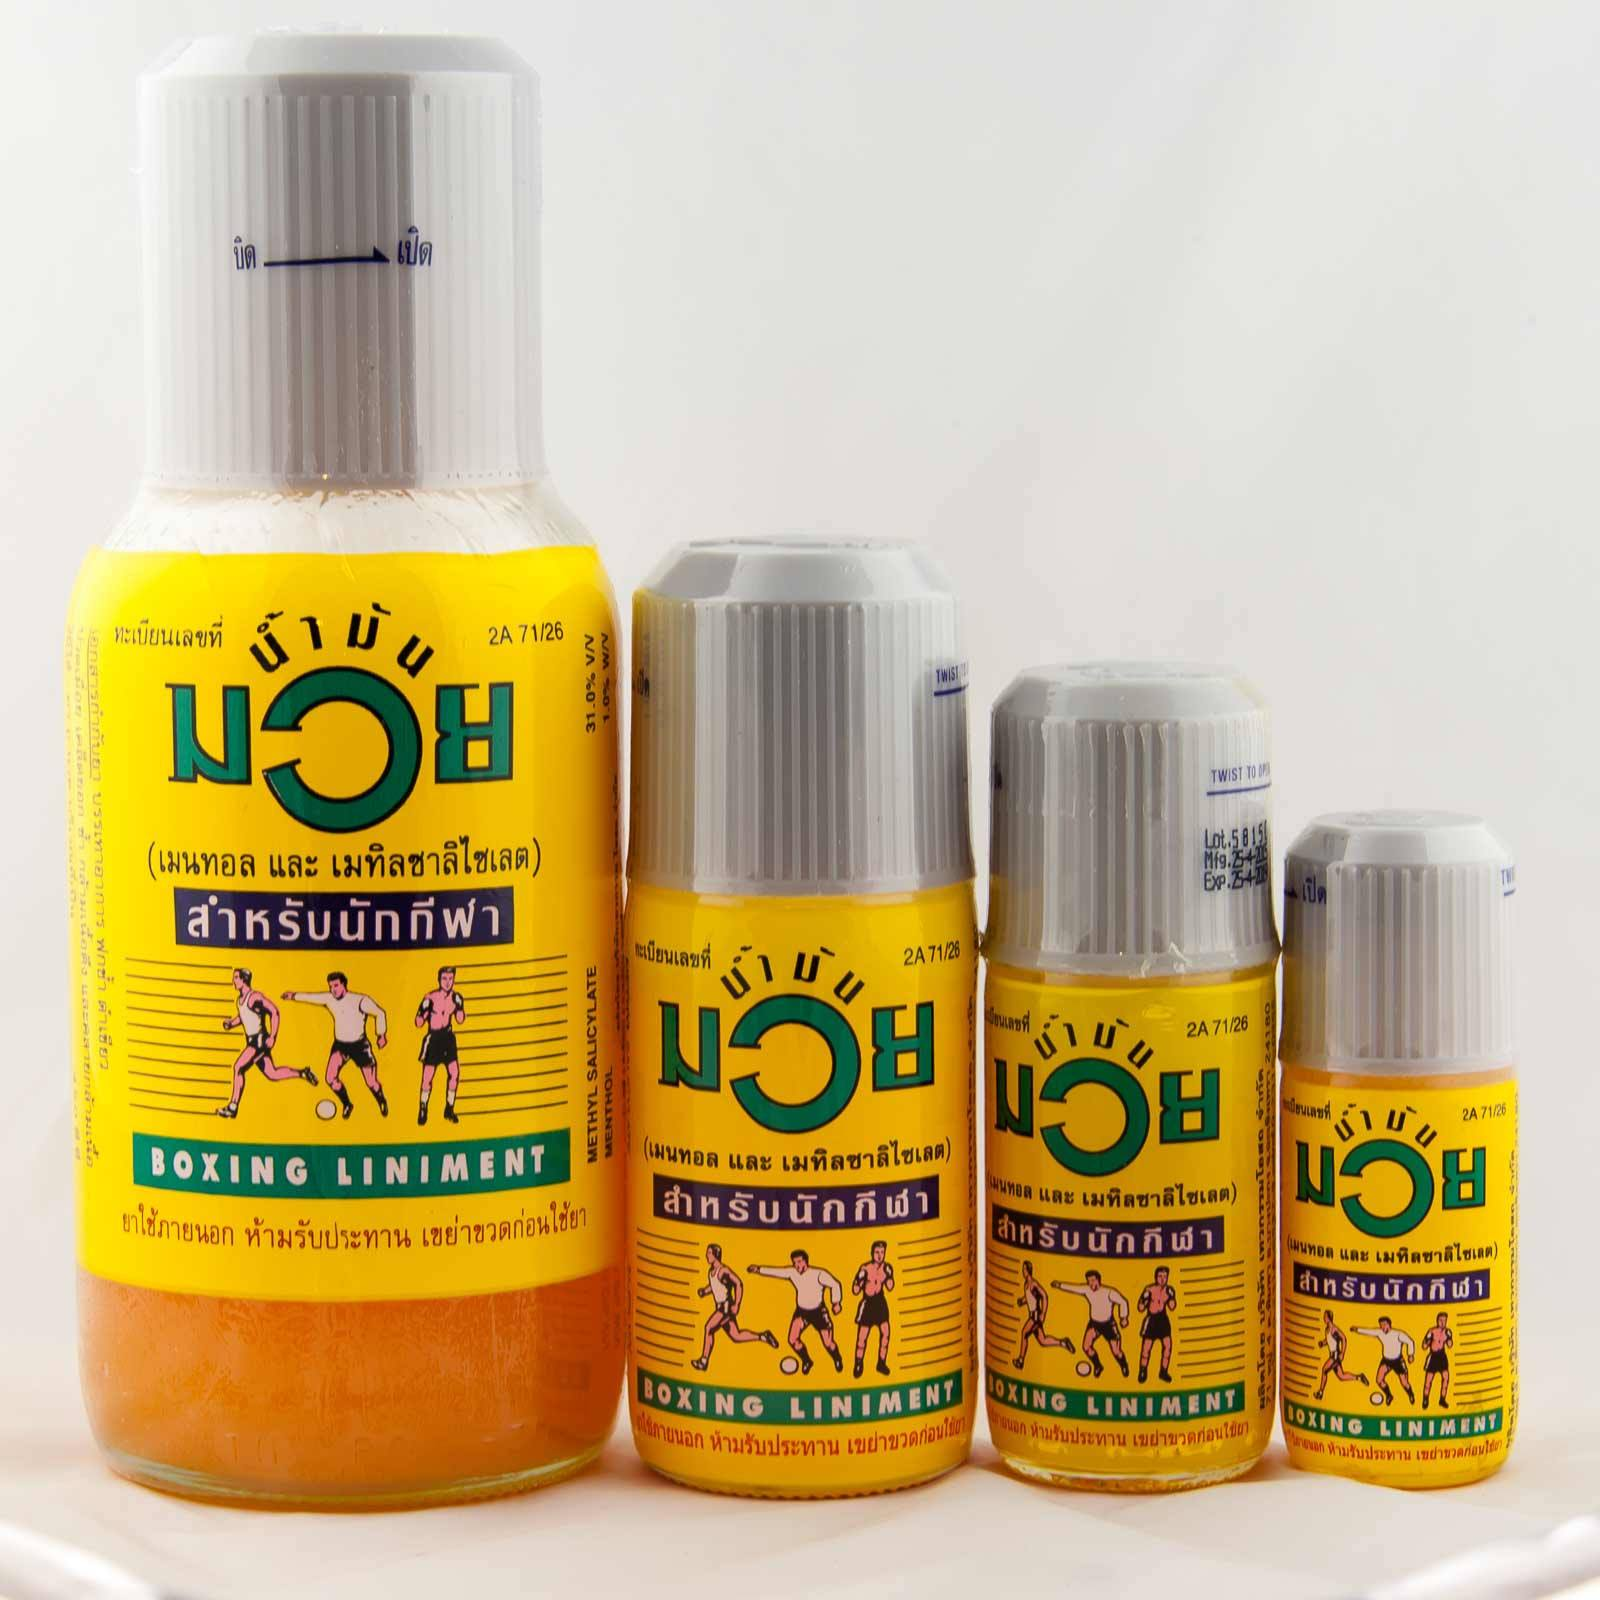 Muay Thai Liniment Oil